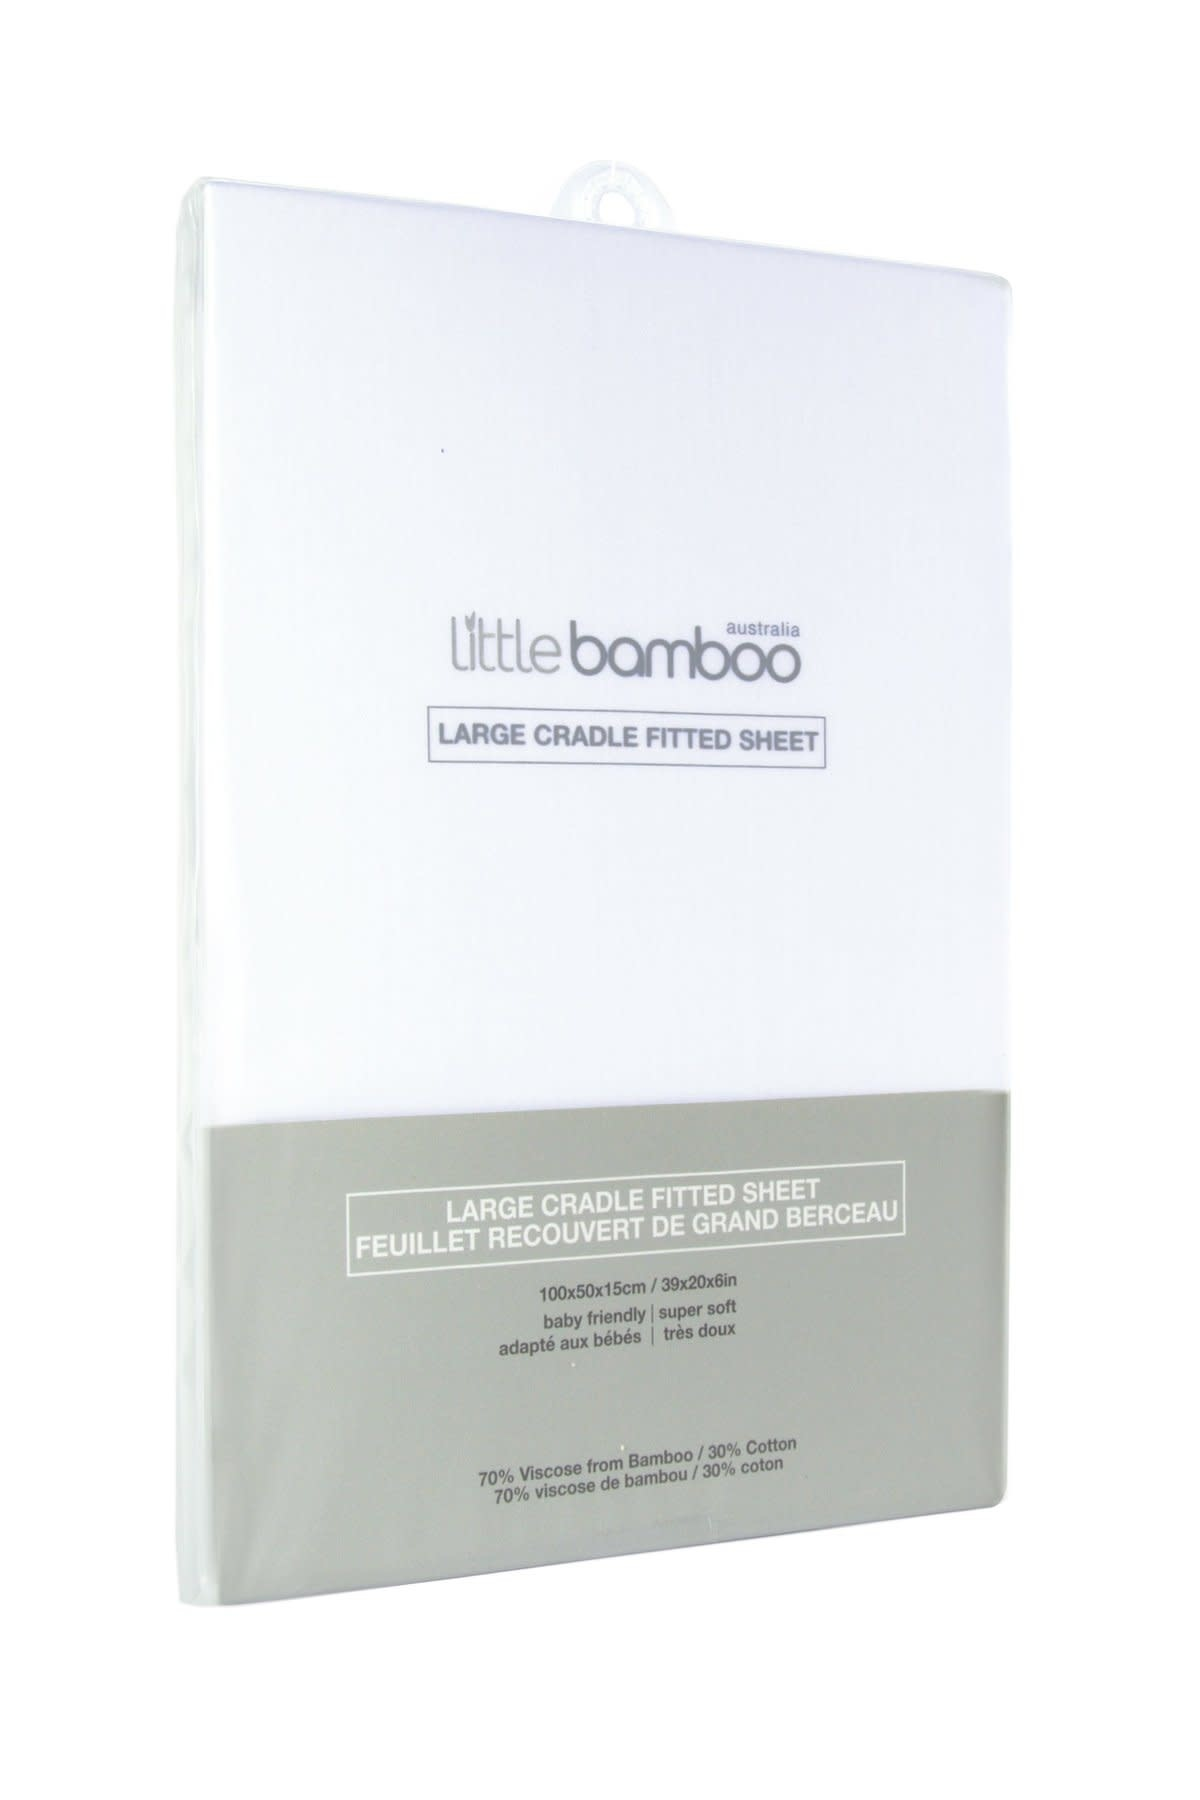 Little Bamboo Little Bamboo Large Cradle Fitted Sheets - 100x50x15cm